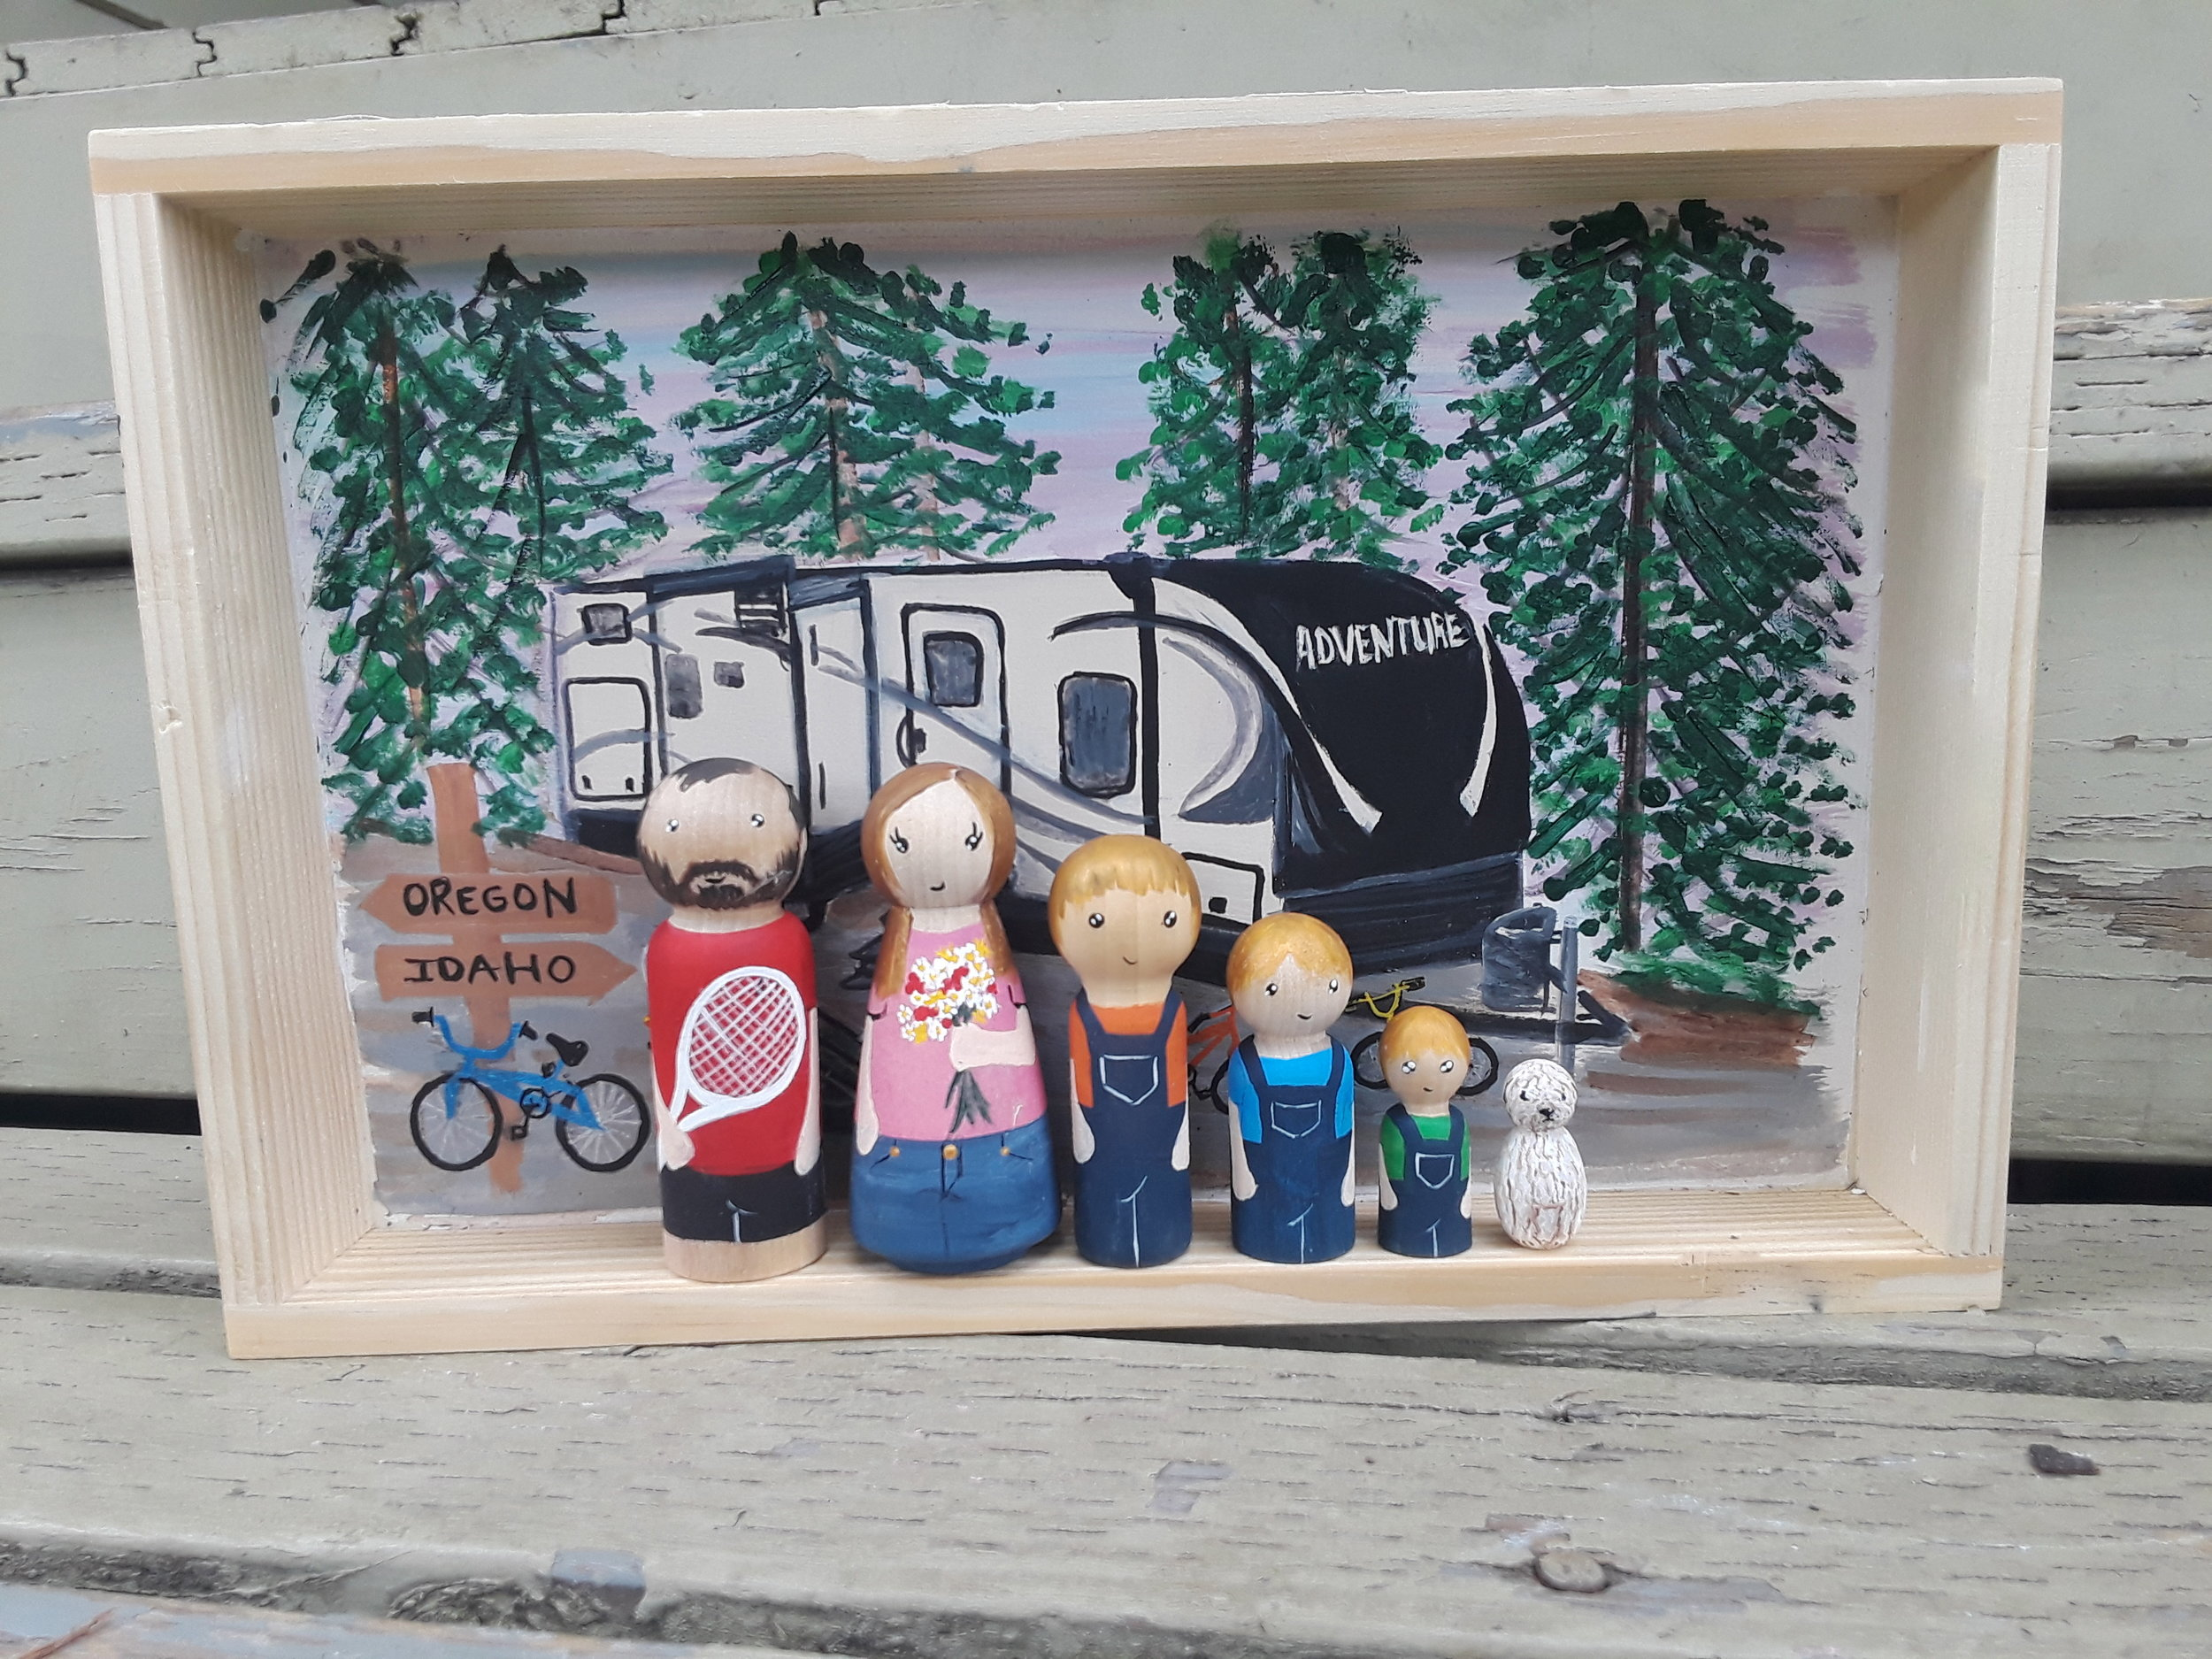 RV Adventure Life - This family wanted to have a special Shadow Box that would represent their adventurous life living in an RV. They wanted their kids to always remember and treasure the great times they experienced together living their own adventure. They decided to add the kids bikes to the Shadow Box. Dad is a tennis coach and mom always receives colorful flowers from her sweet three boys. Of course, their furry friend is also part of the family portrait.Box size 8x12 inches. 6 pegsStarts at $165